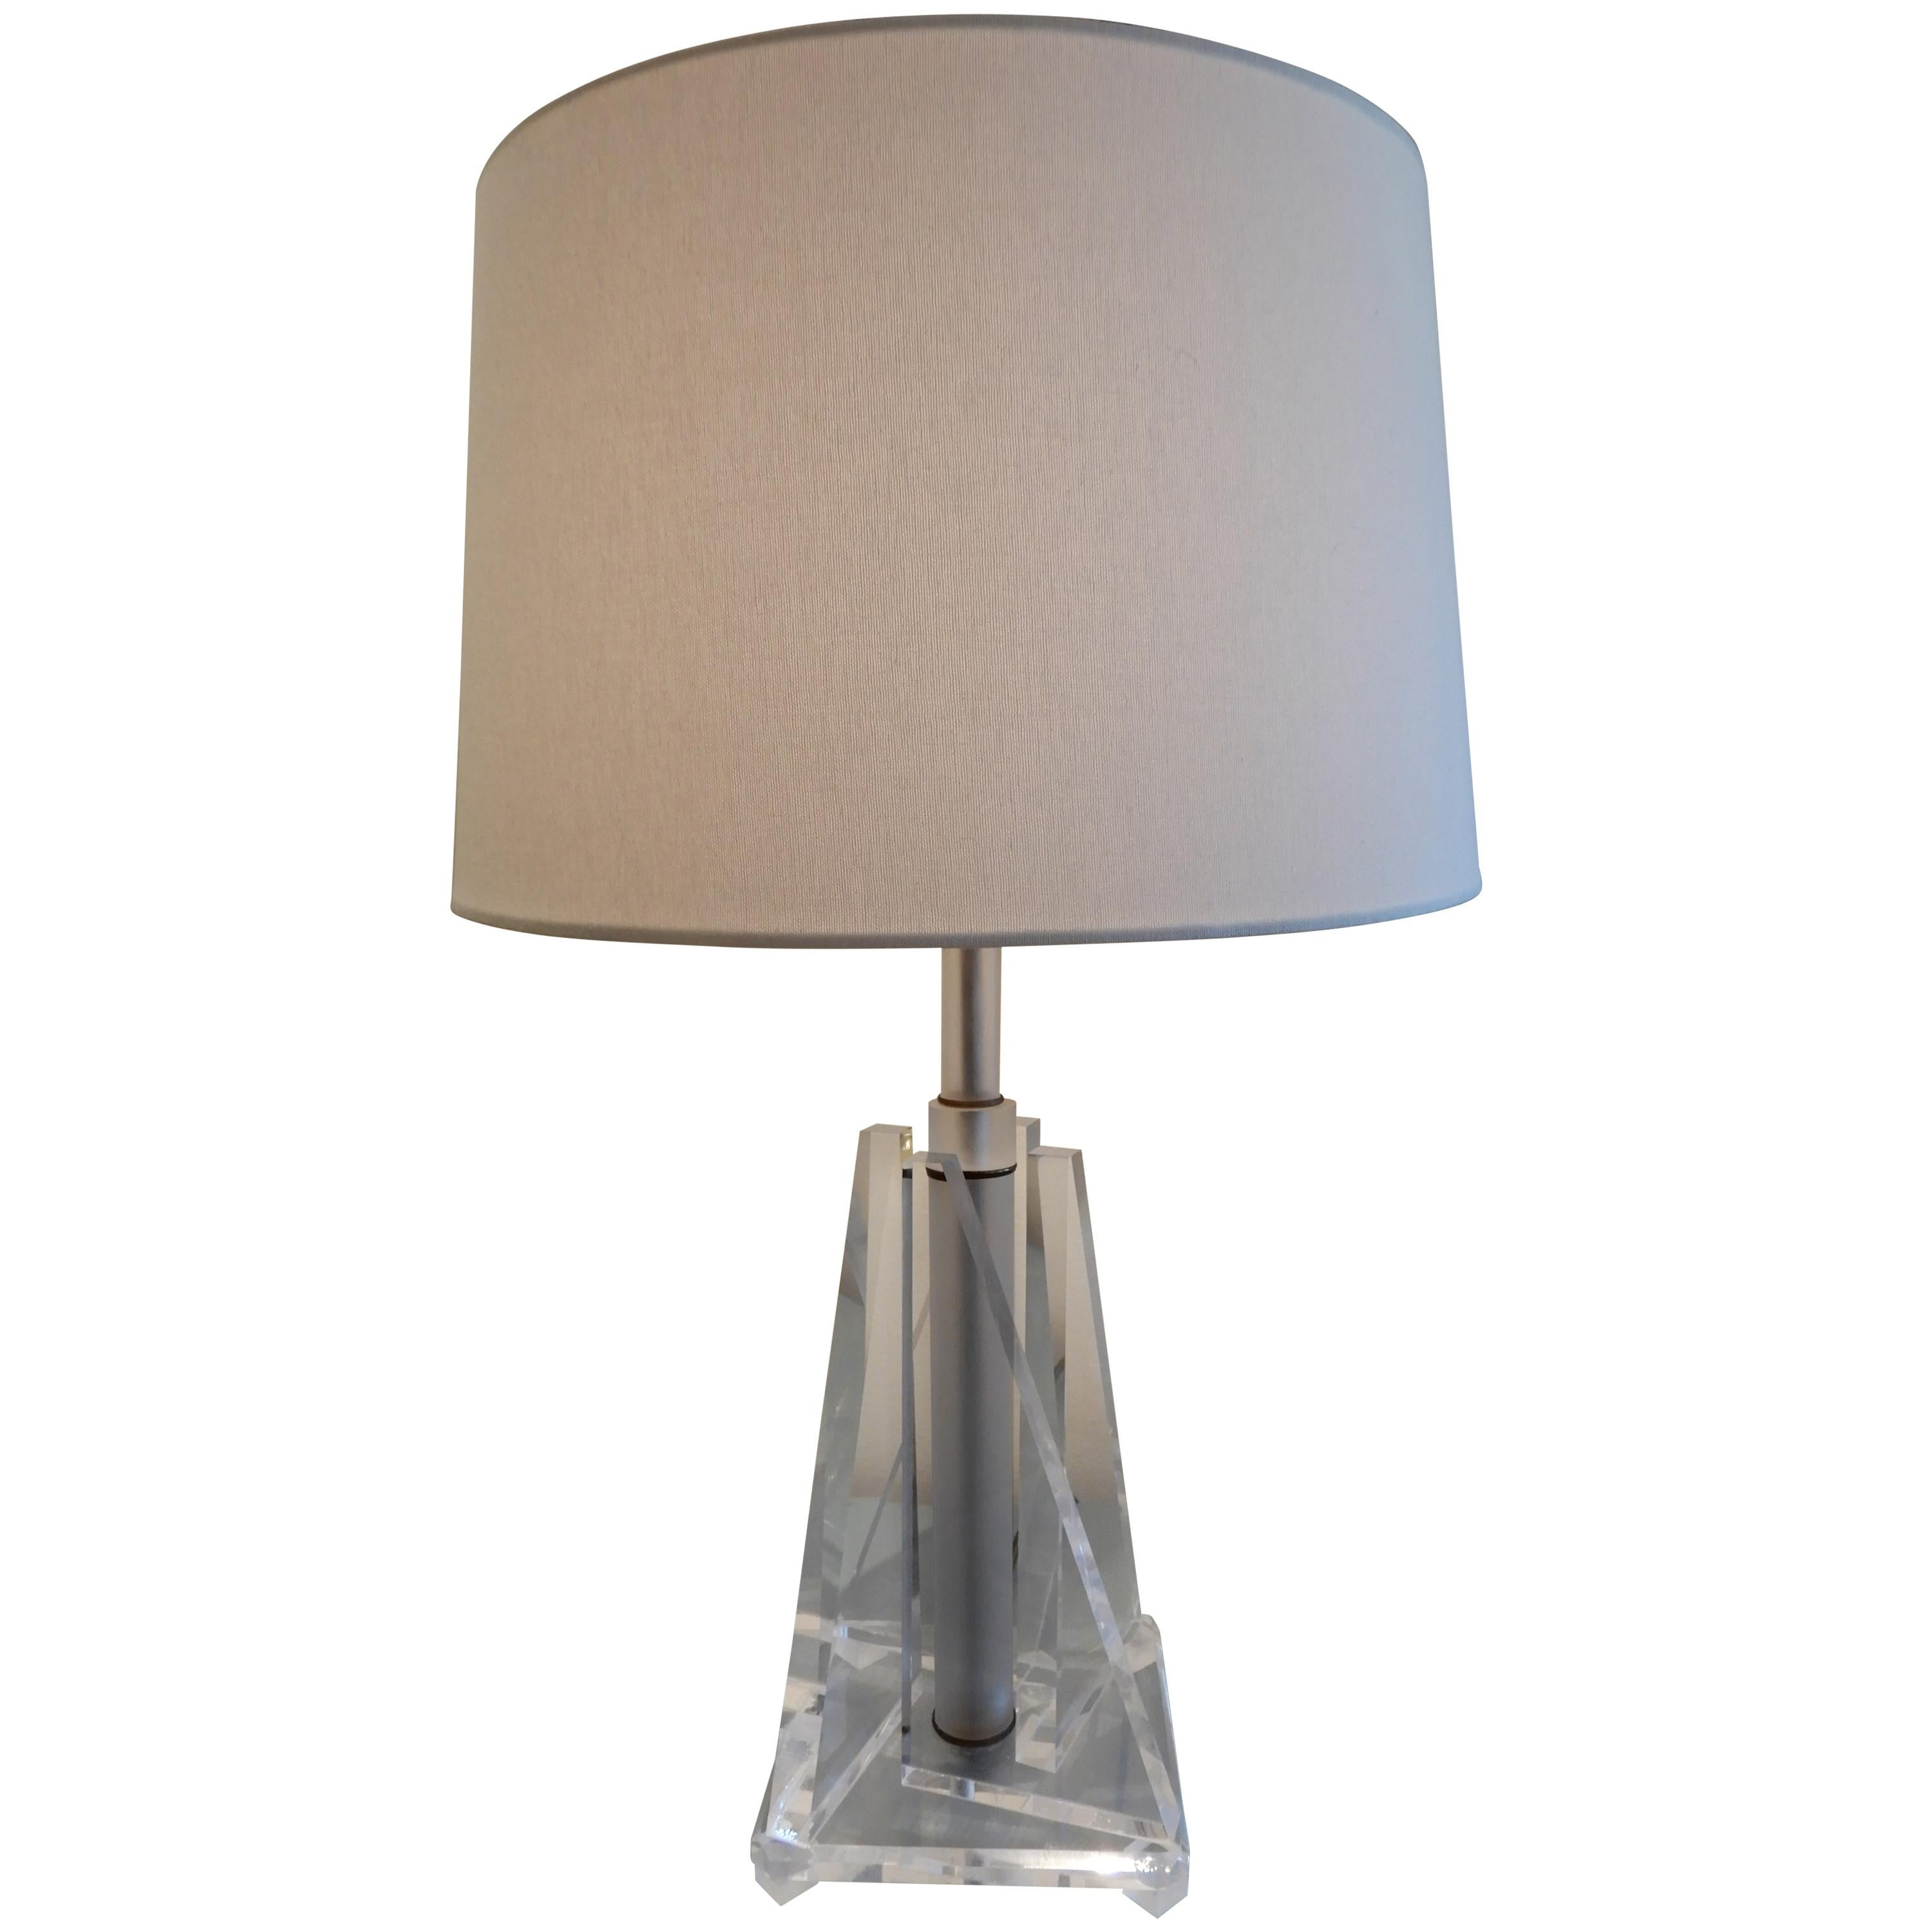 Pair of Midcentury Lucite Table Lamps